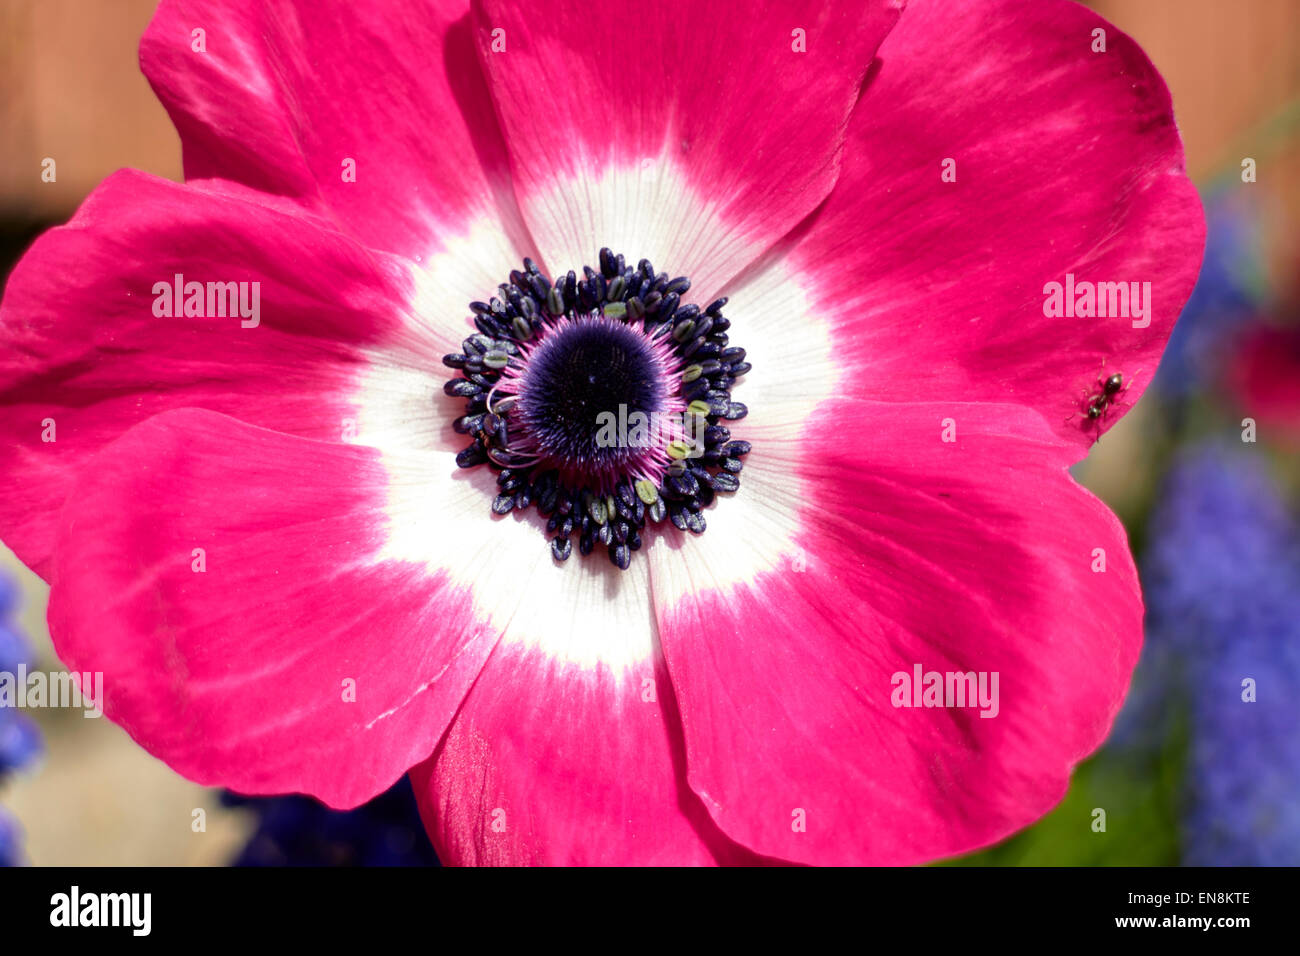 anemone mona lisa coronaria pink flower with insect in a garden in the uk - Stock Image